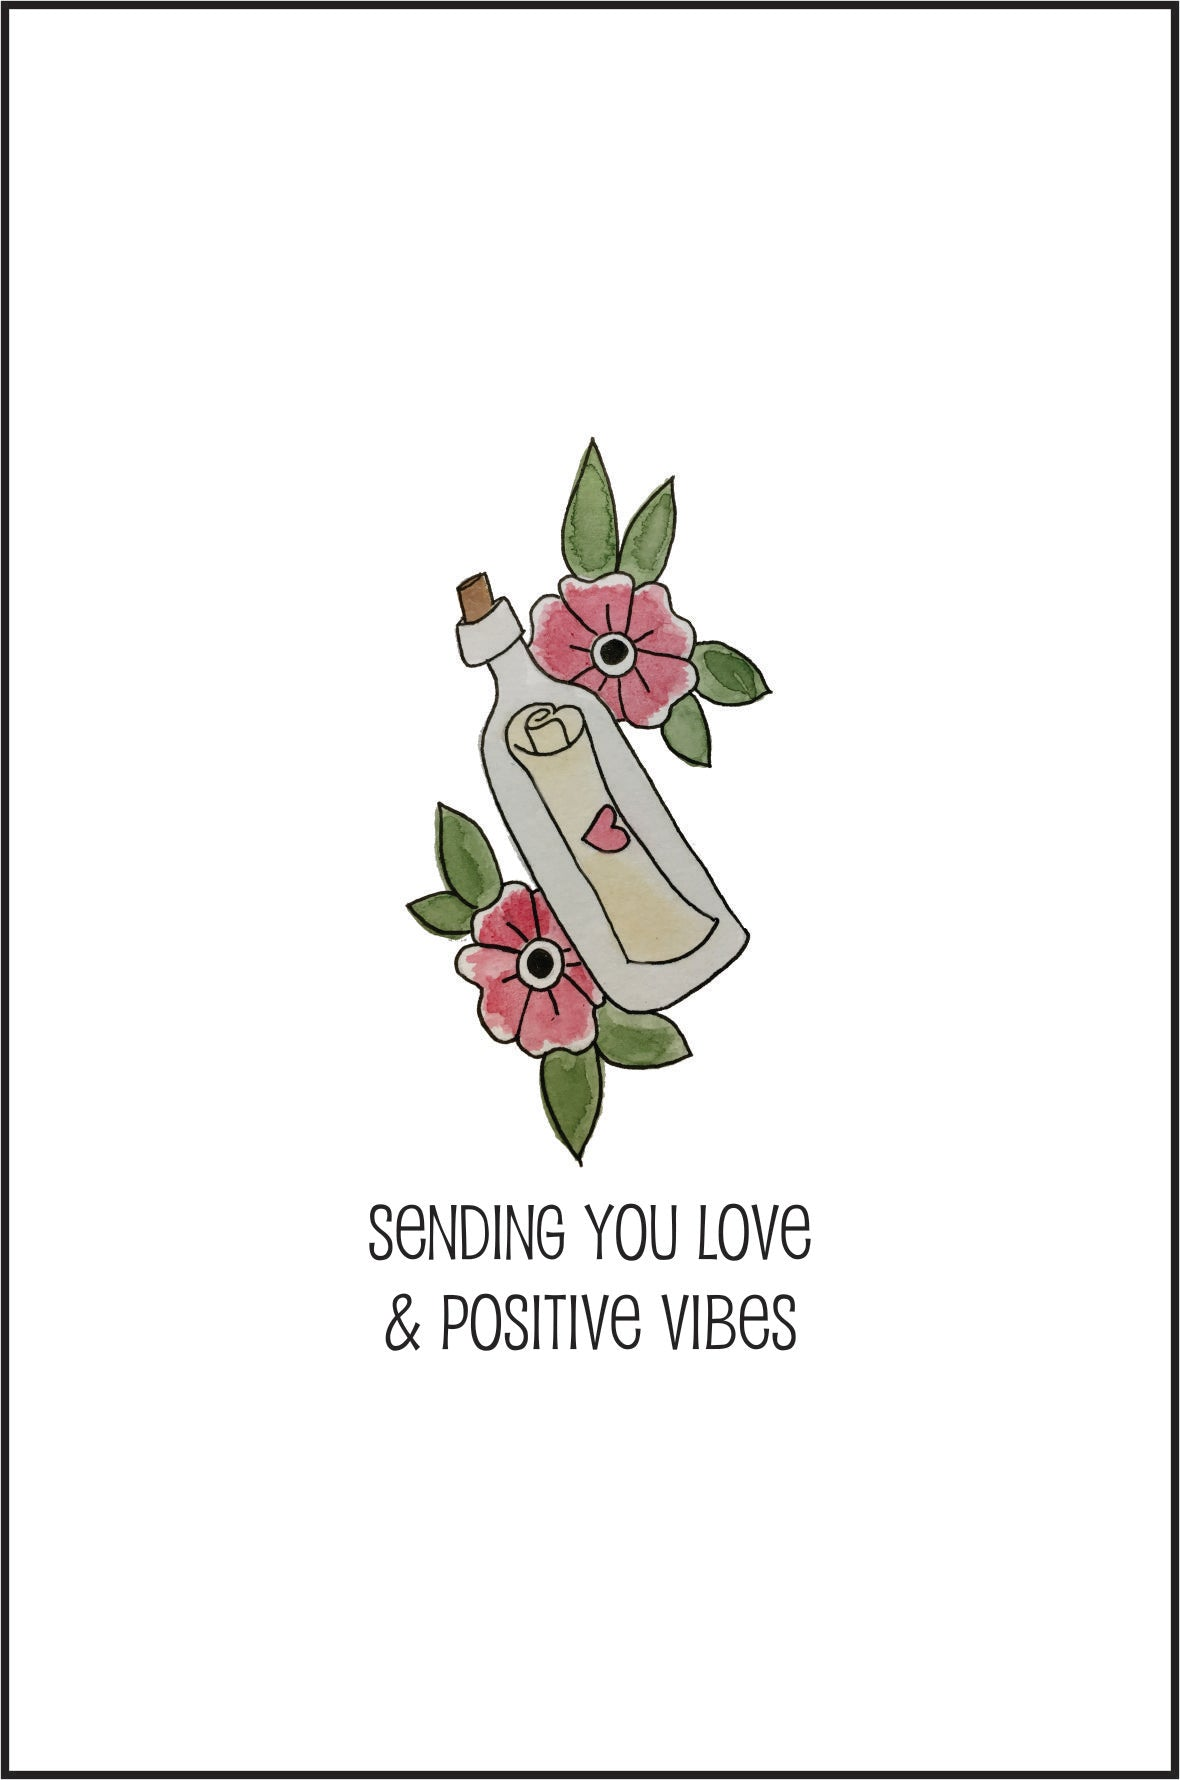 Love & Positive Vibes